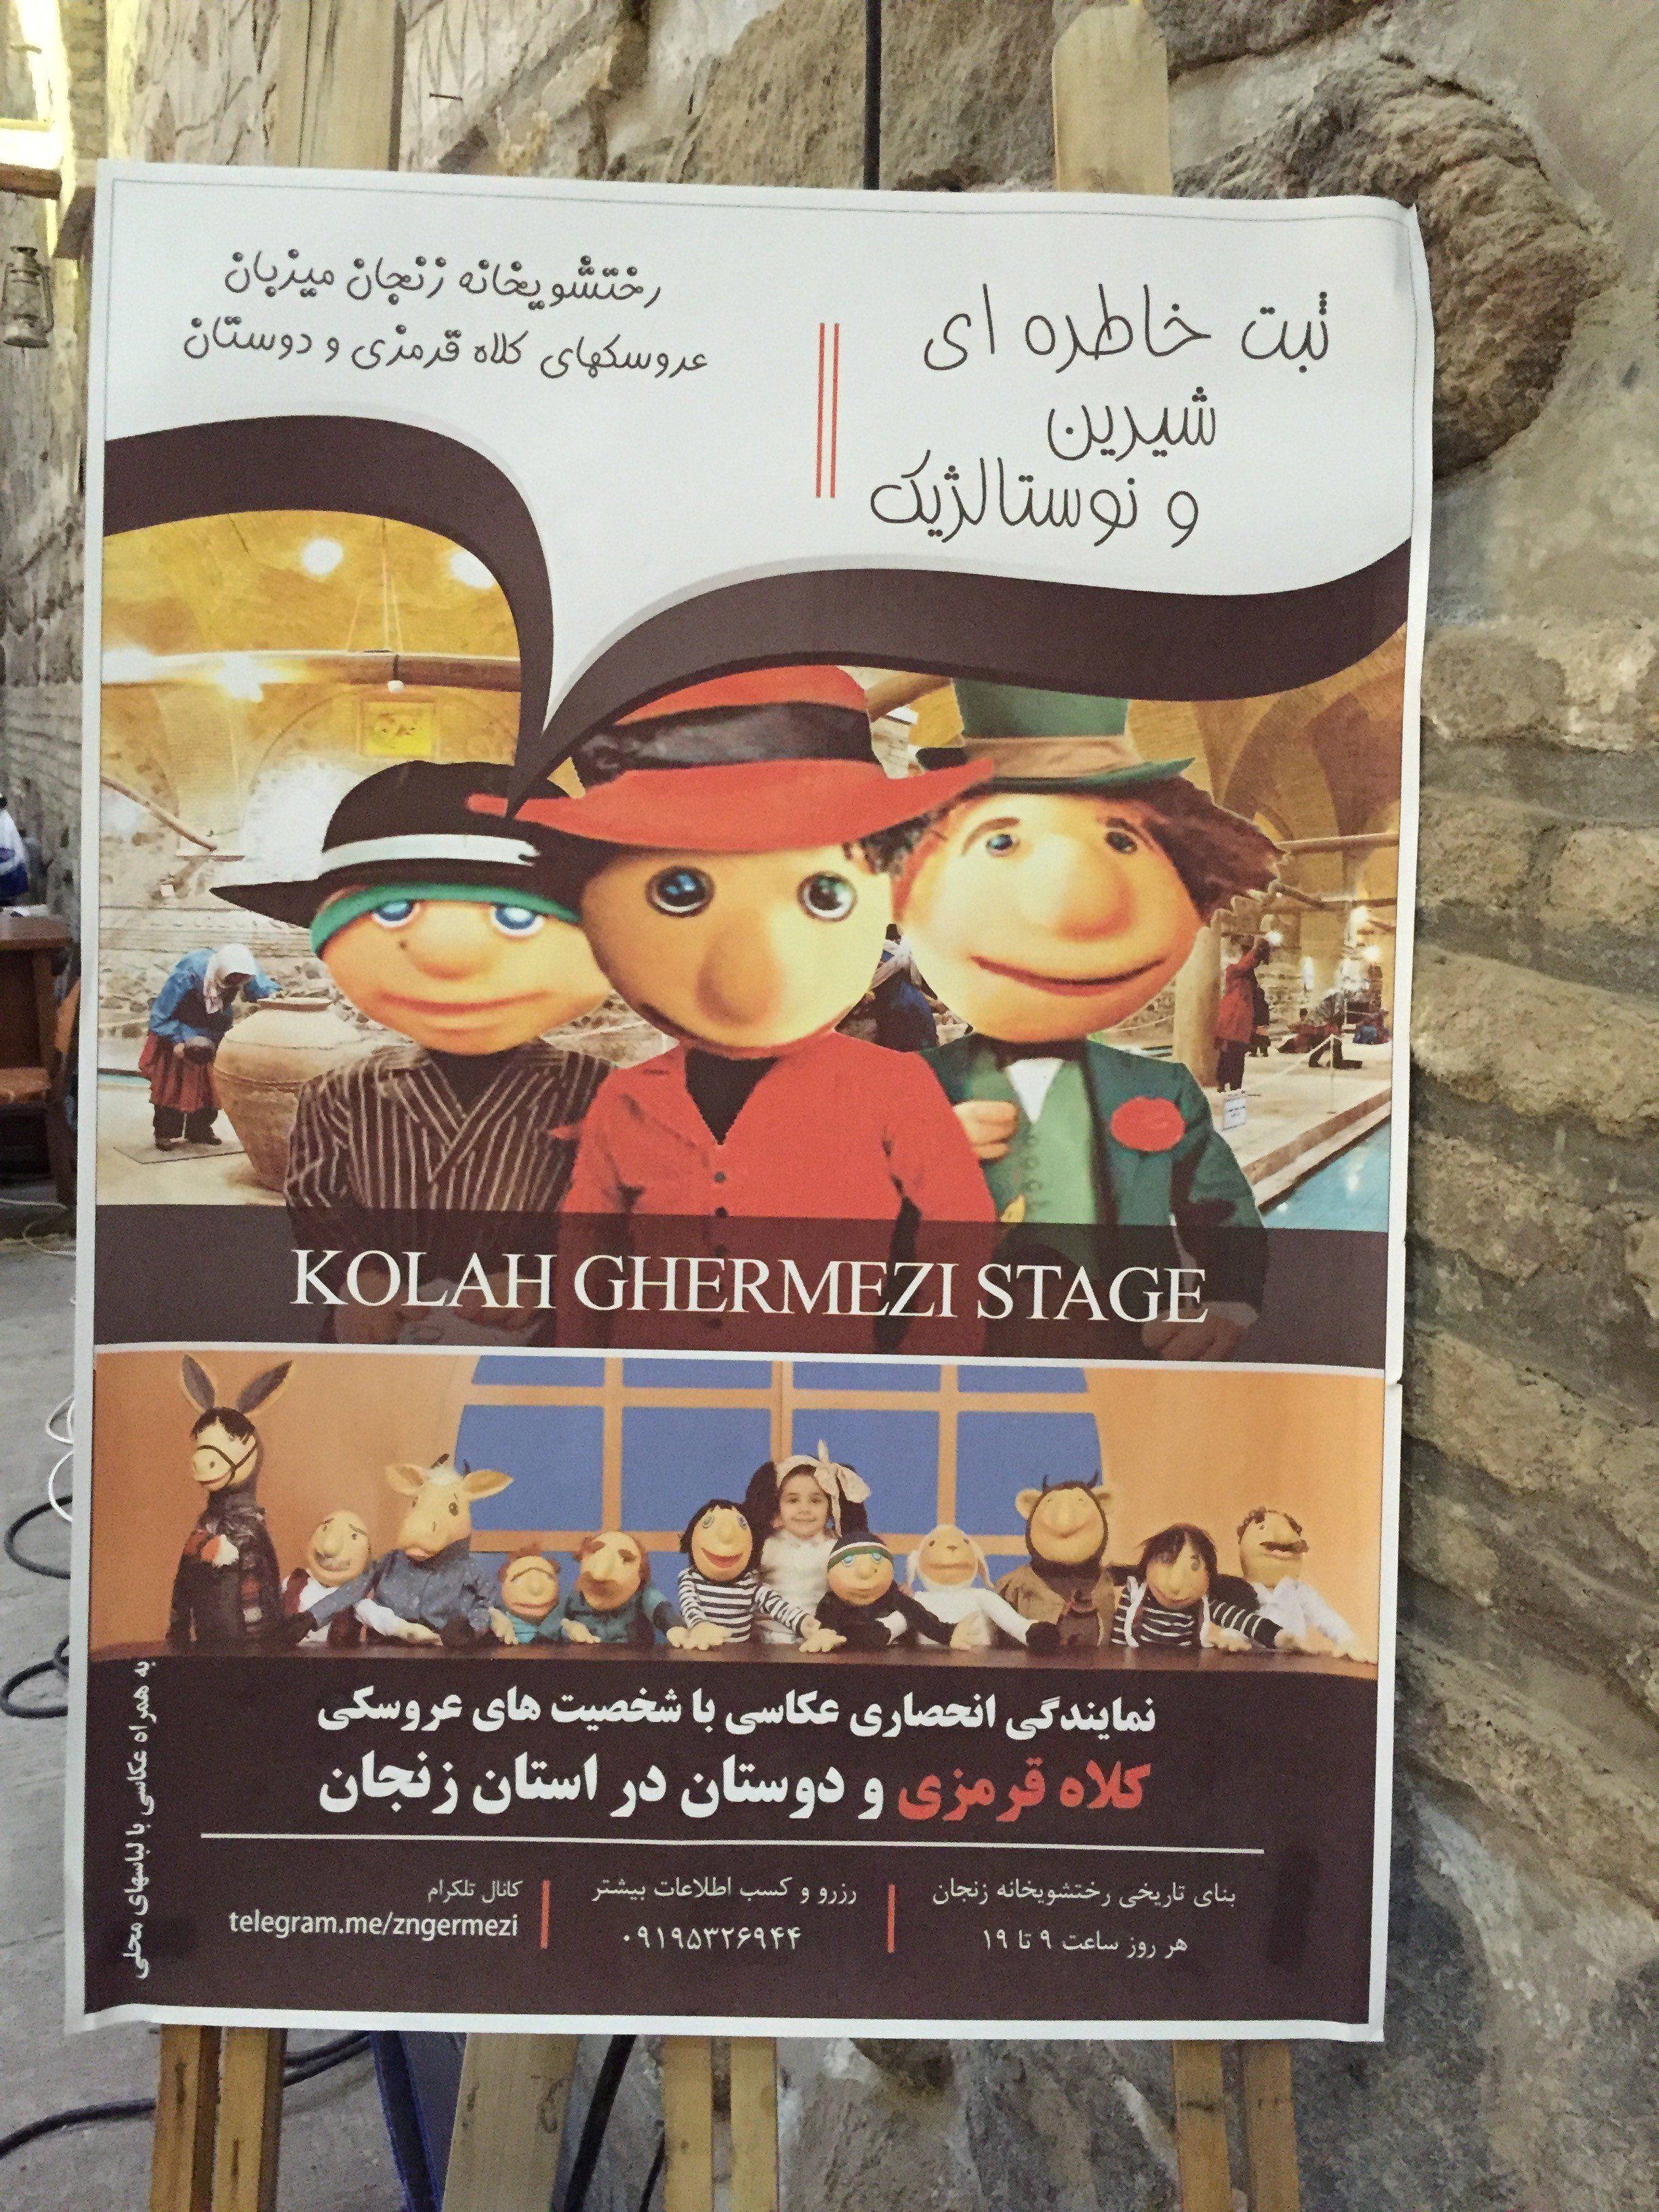 'Red Hat' is a children's television puppet show which was recording and broadcasting from Rakhatshor-Khaneh